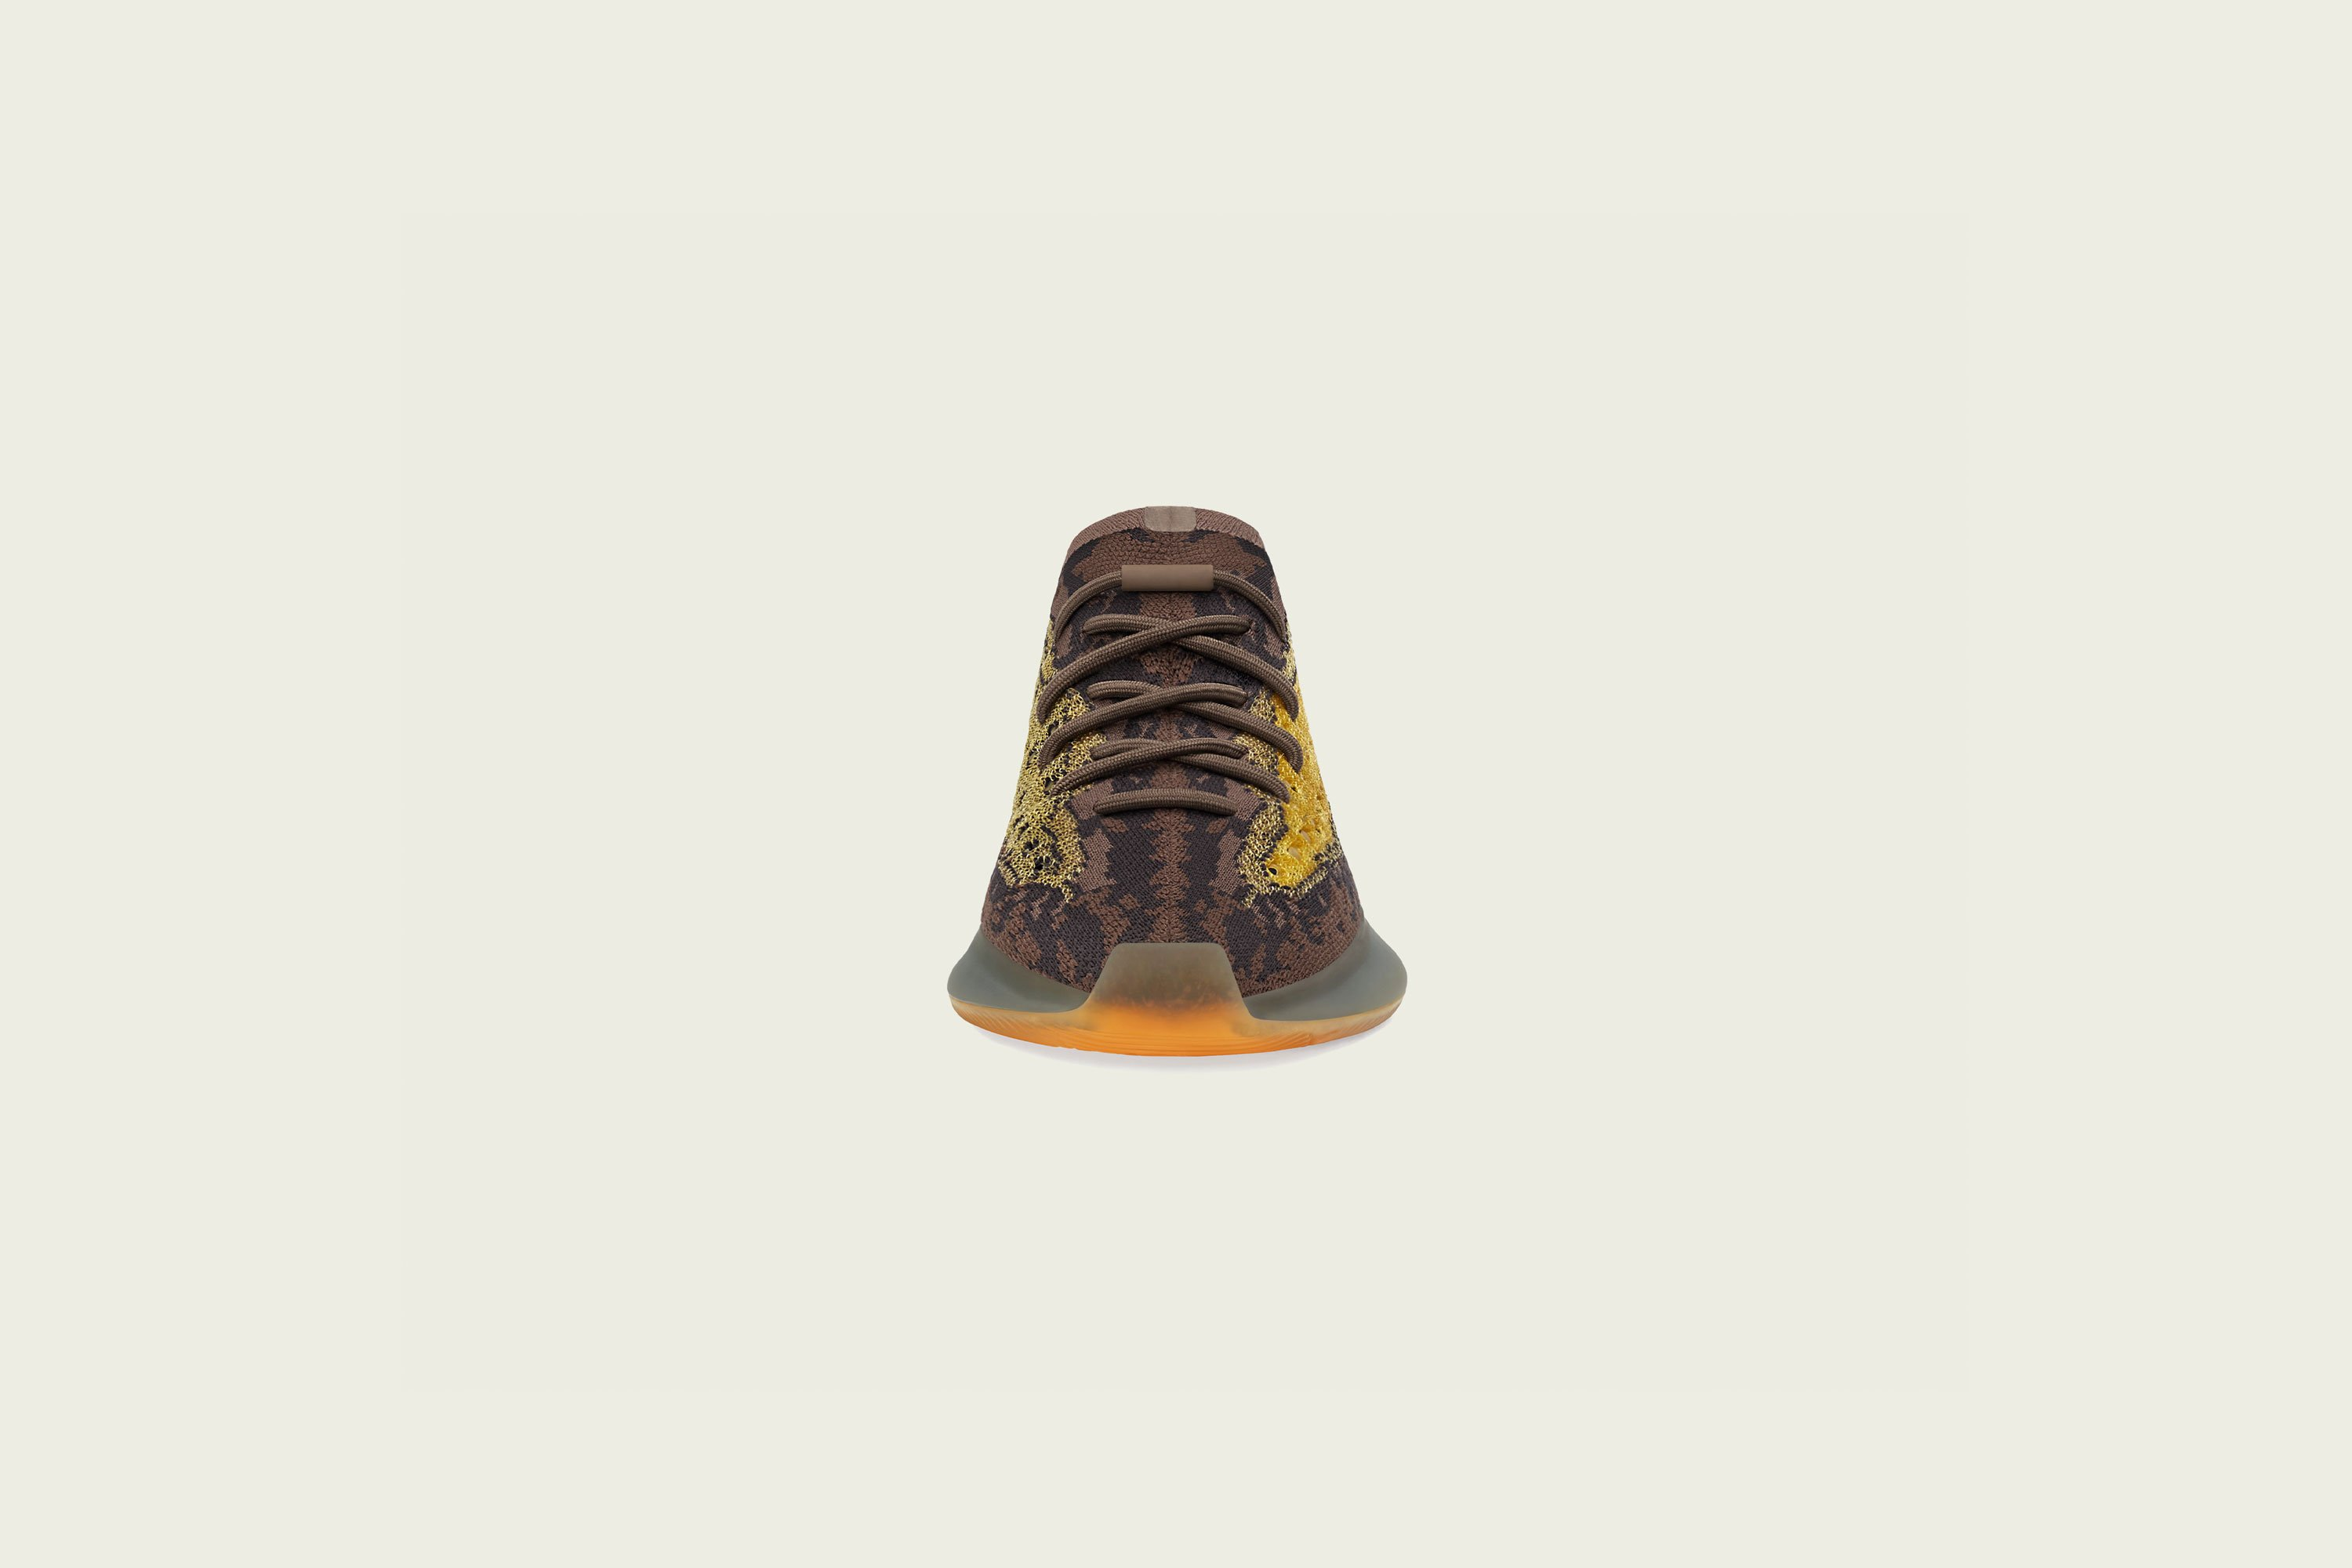 Up There Launches - Yeezy Boost 380 'LMNTE' Non-Reflective